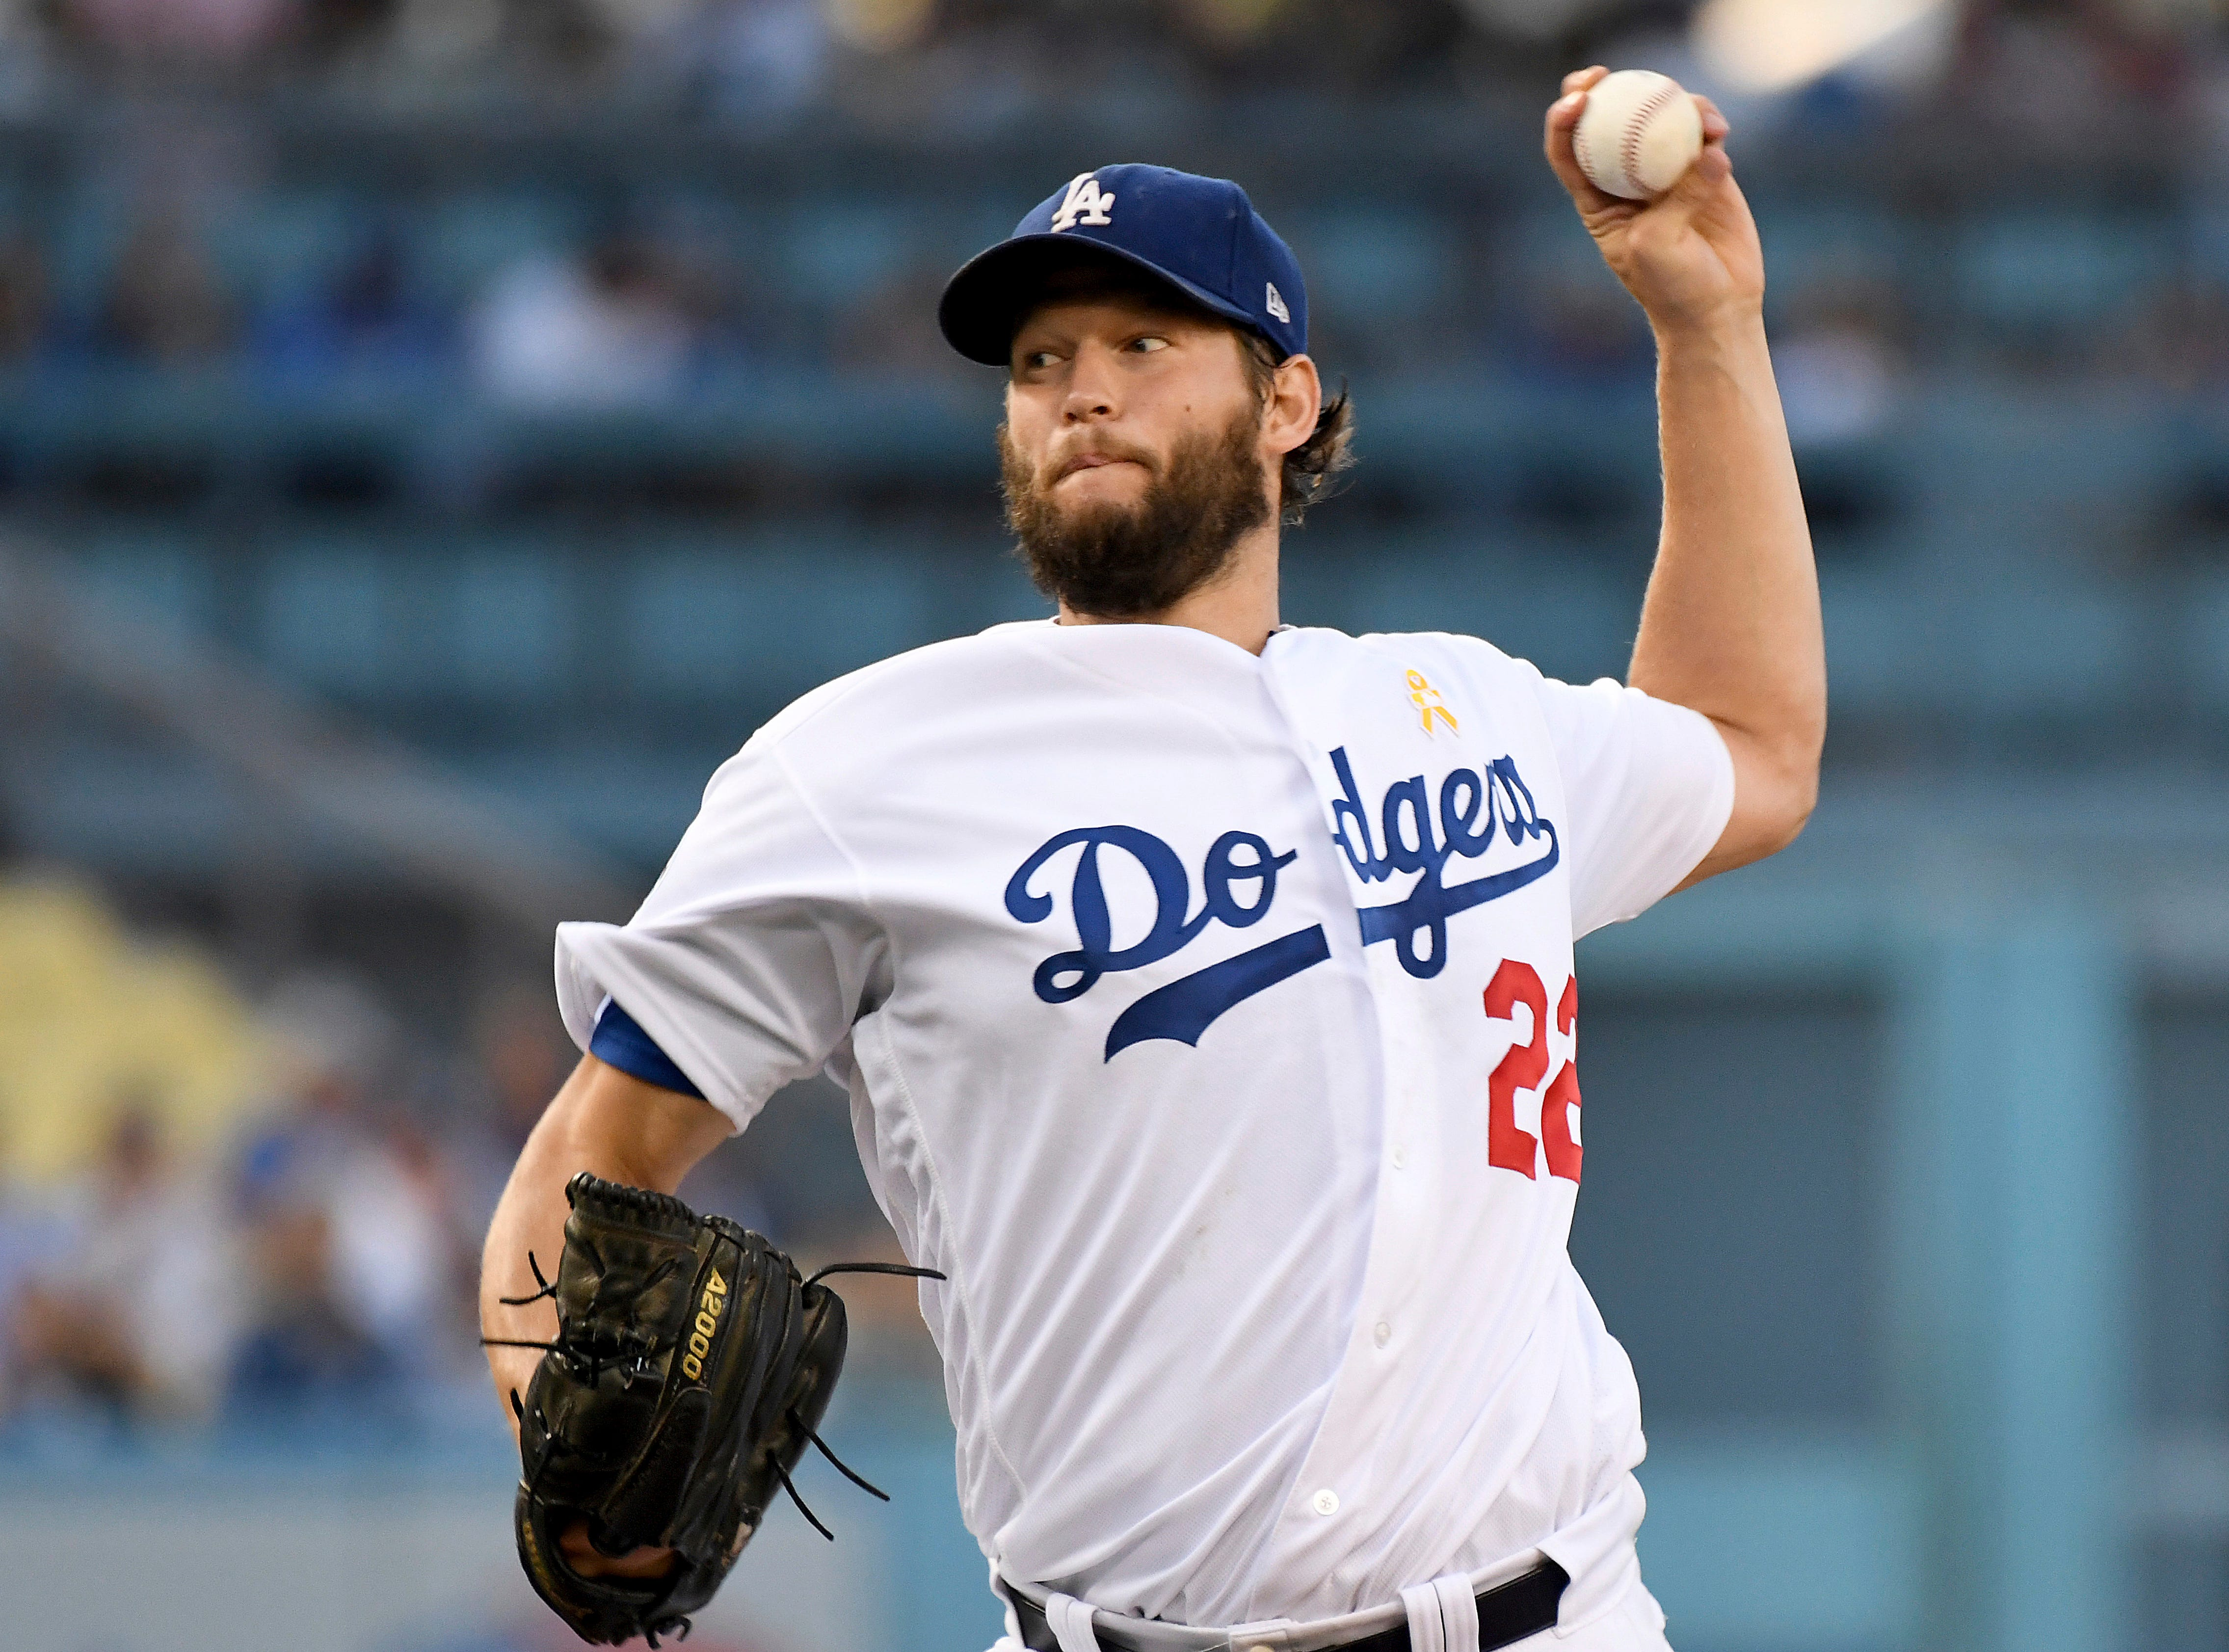 Los Angeles Dodgers pitcher Clayton Kershaw throws to the plate during the first inning of a baseball game against the Arizona Diamondbacks, Saturday, Sept. 1, 2018, in Los Angeles.